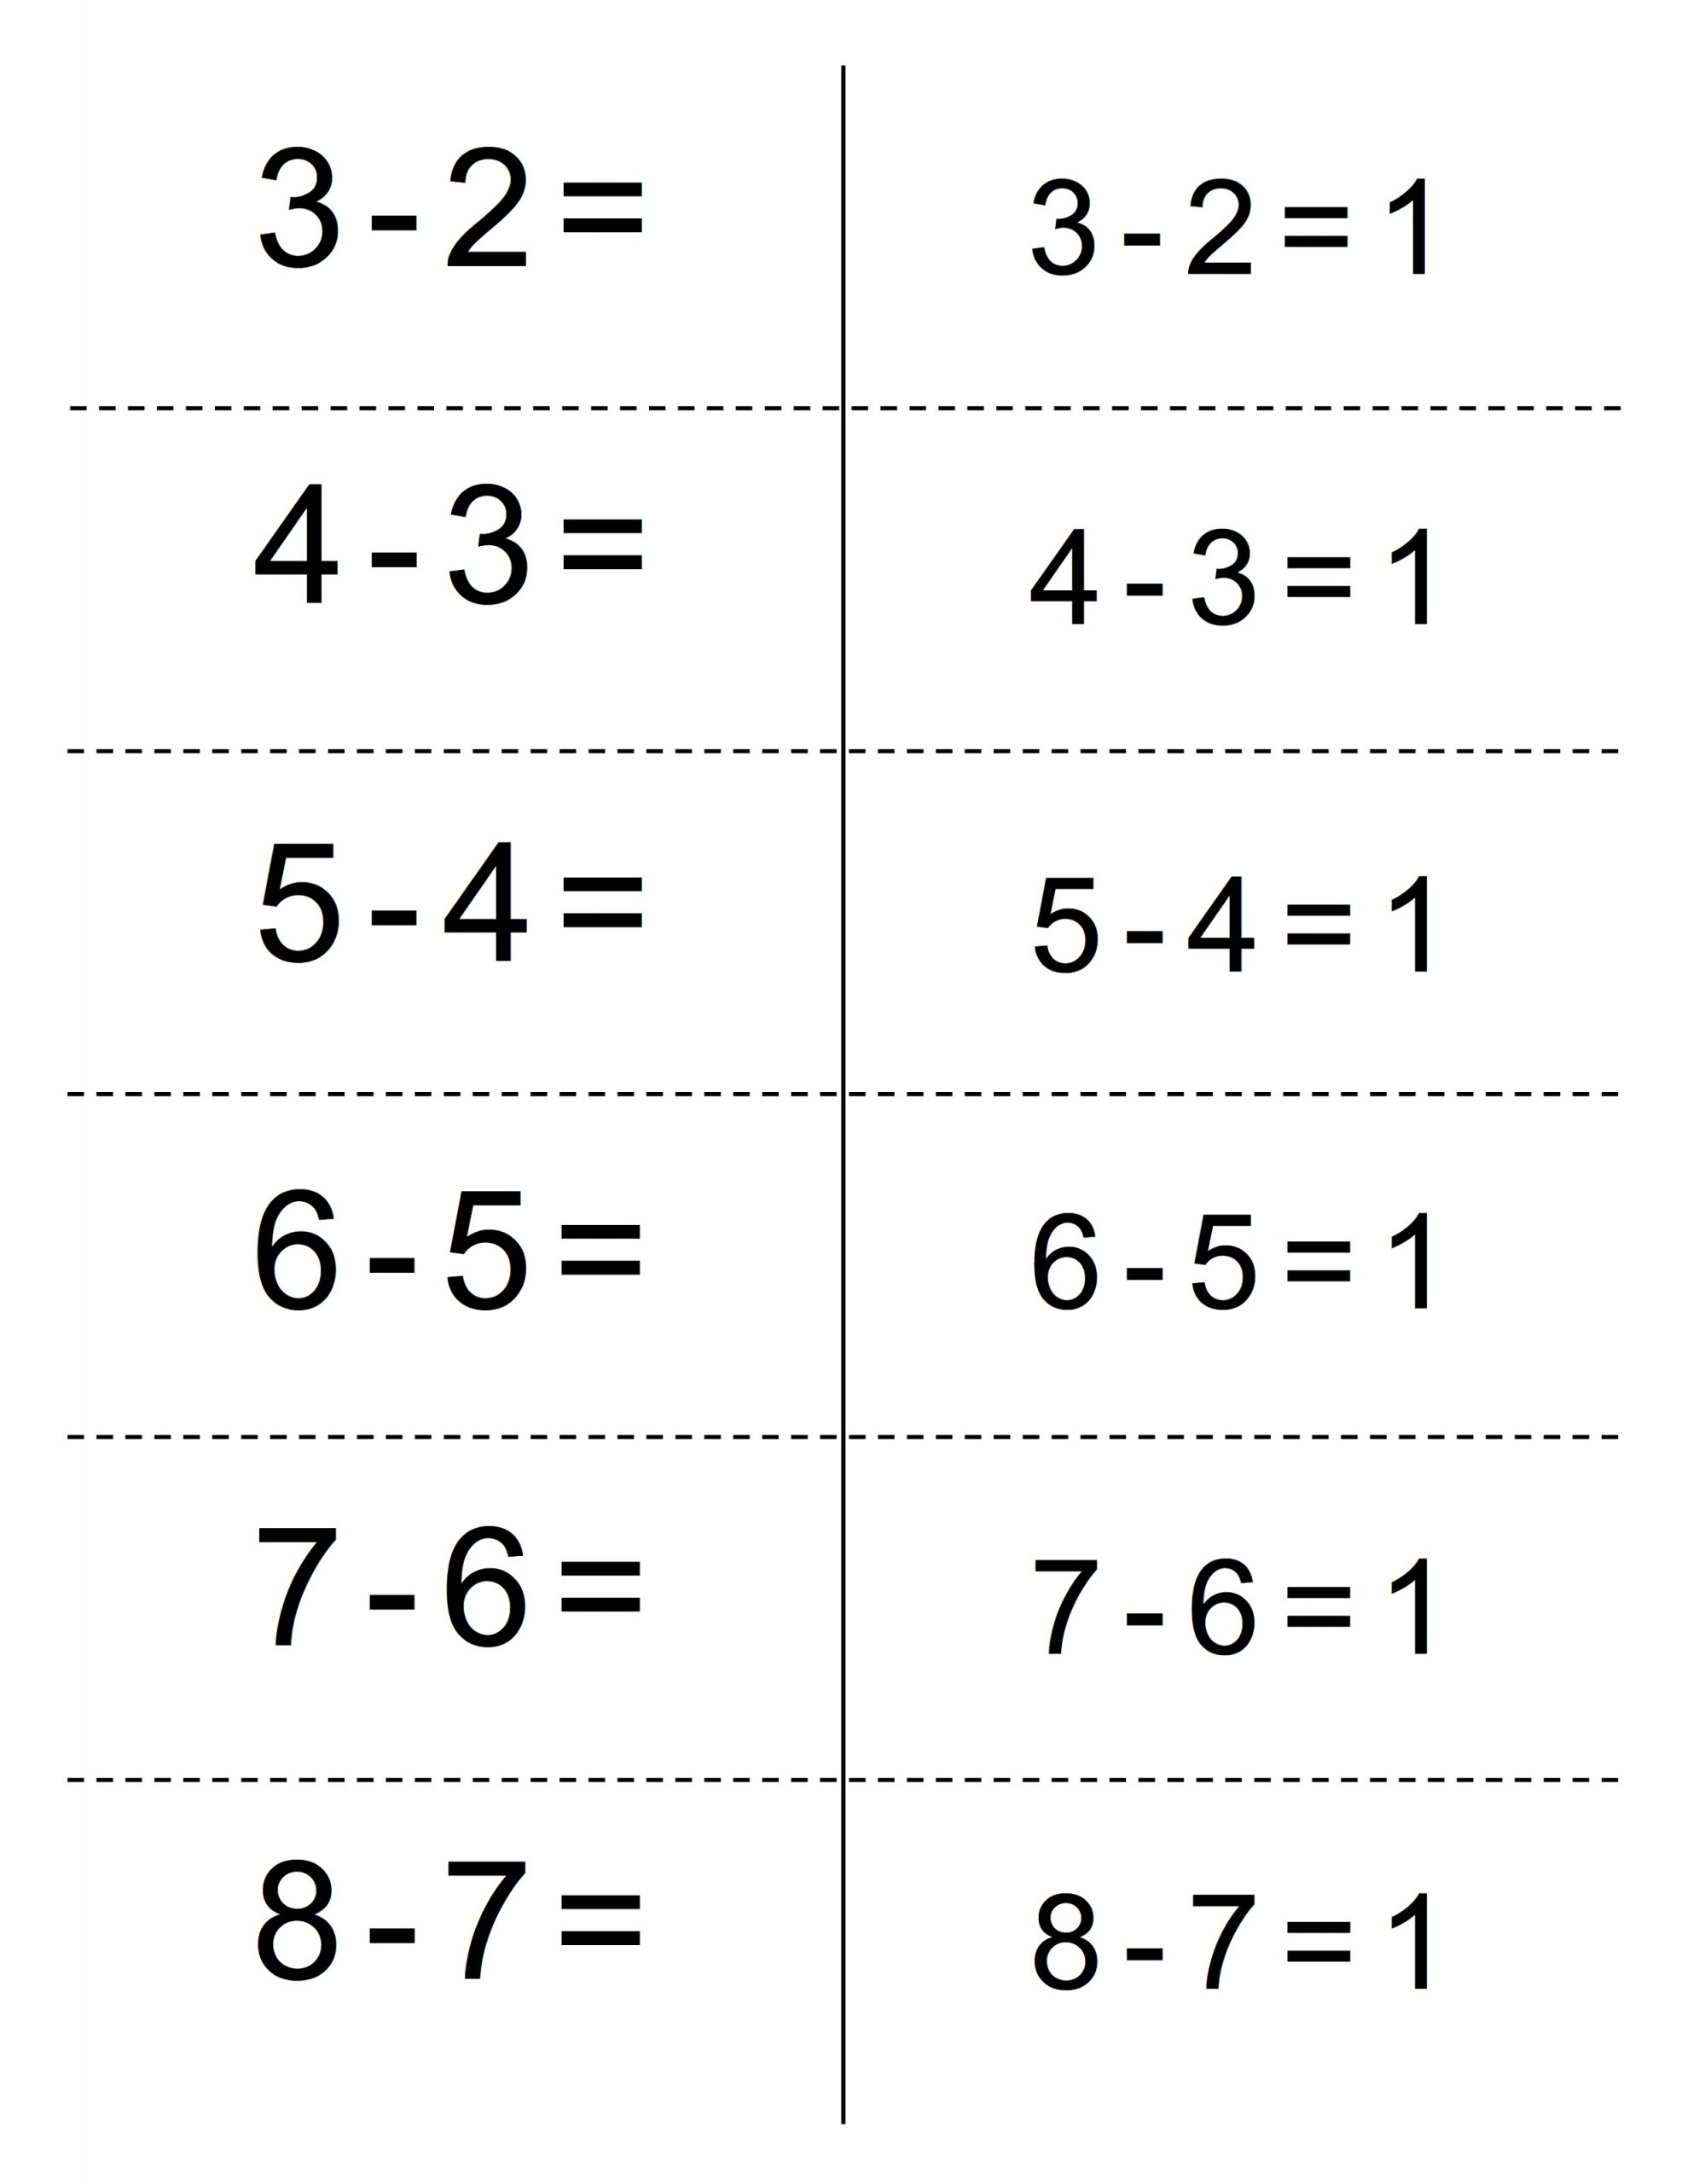 subtraction free easy math worksheets